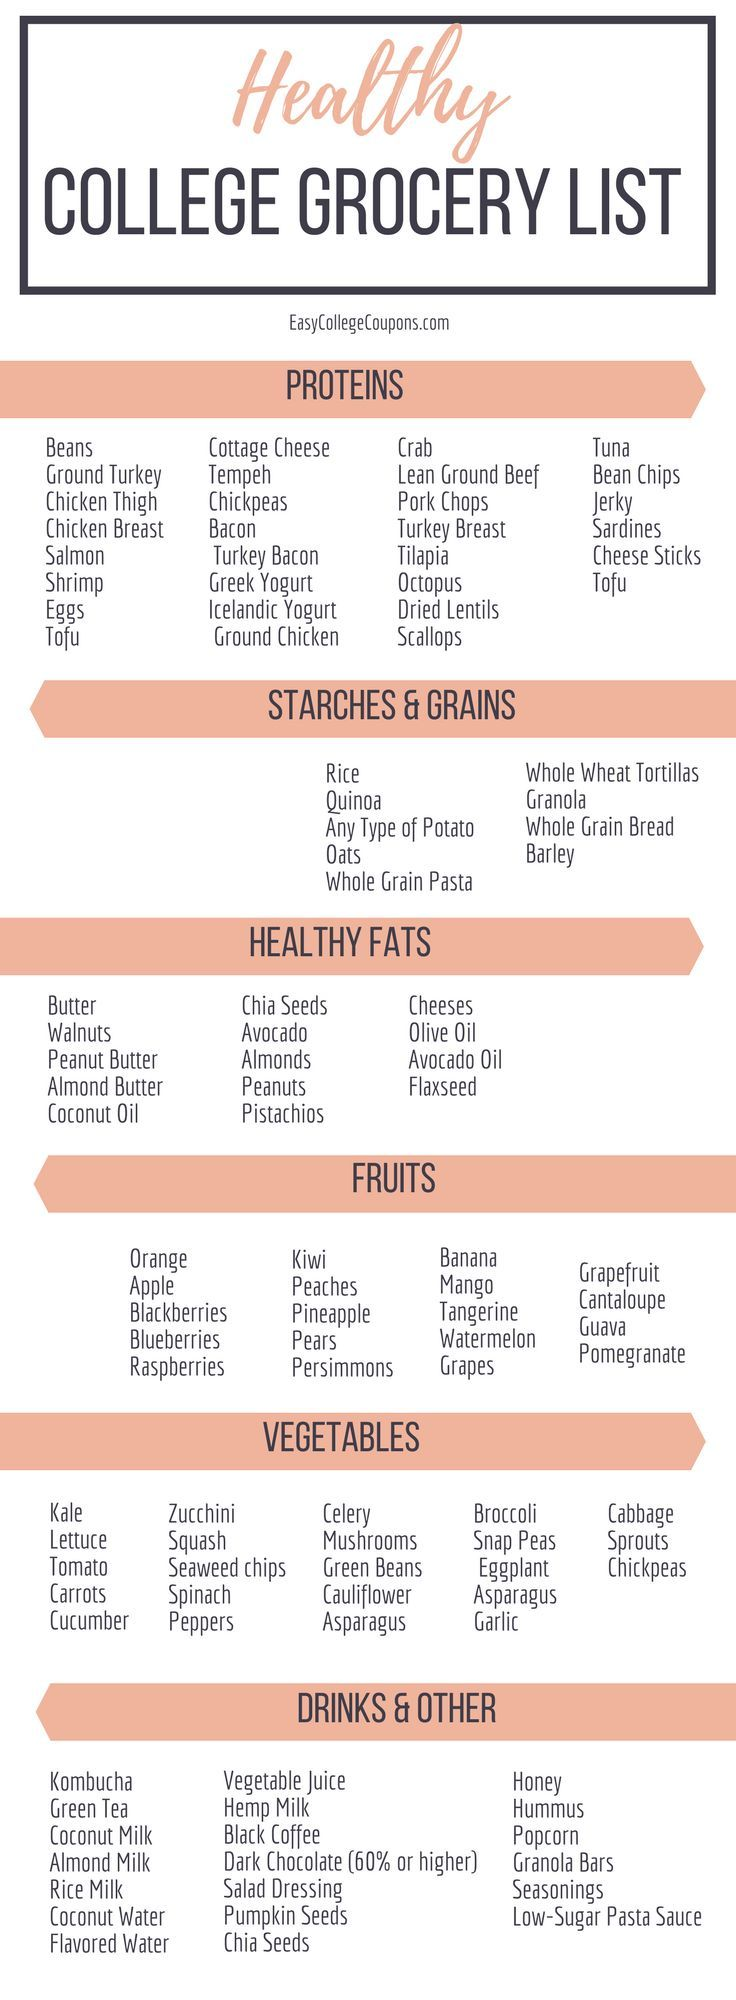 College Grocery List | Free Printable | Healthy Food Ideas  #collegelife #college #healthy #healthyeating #healthychoices #collegetips #collegefoodie